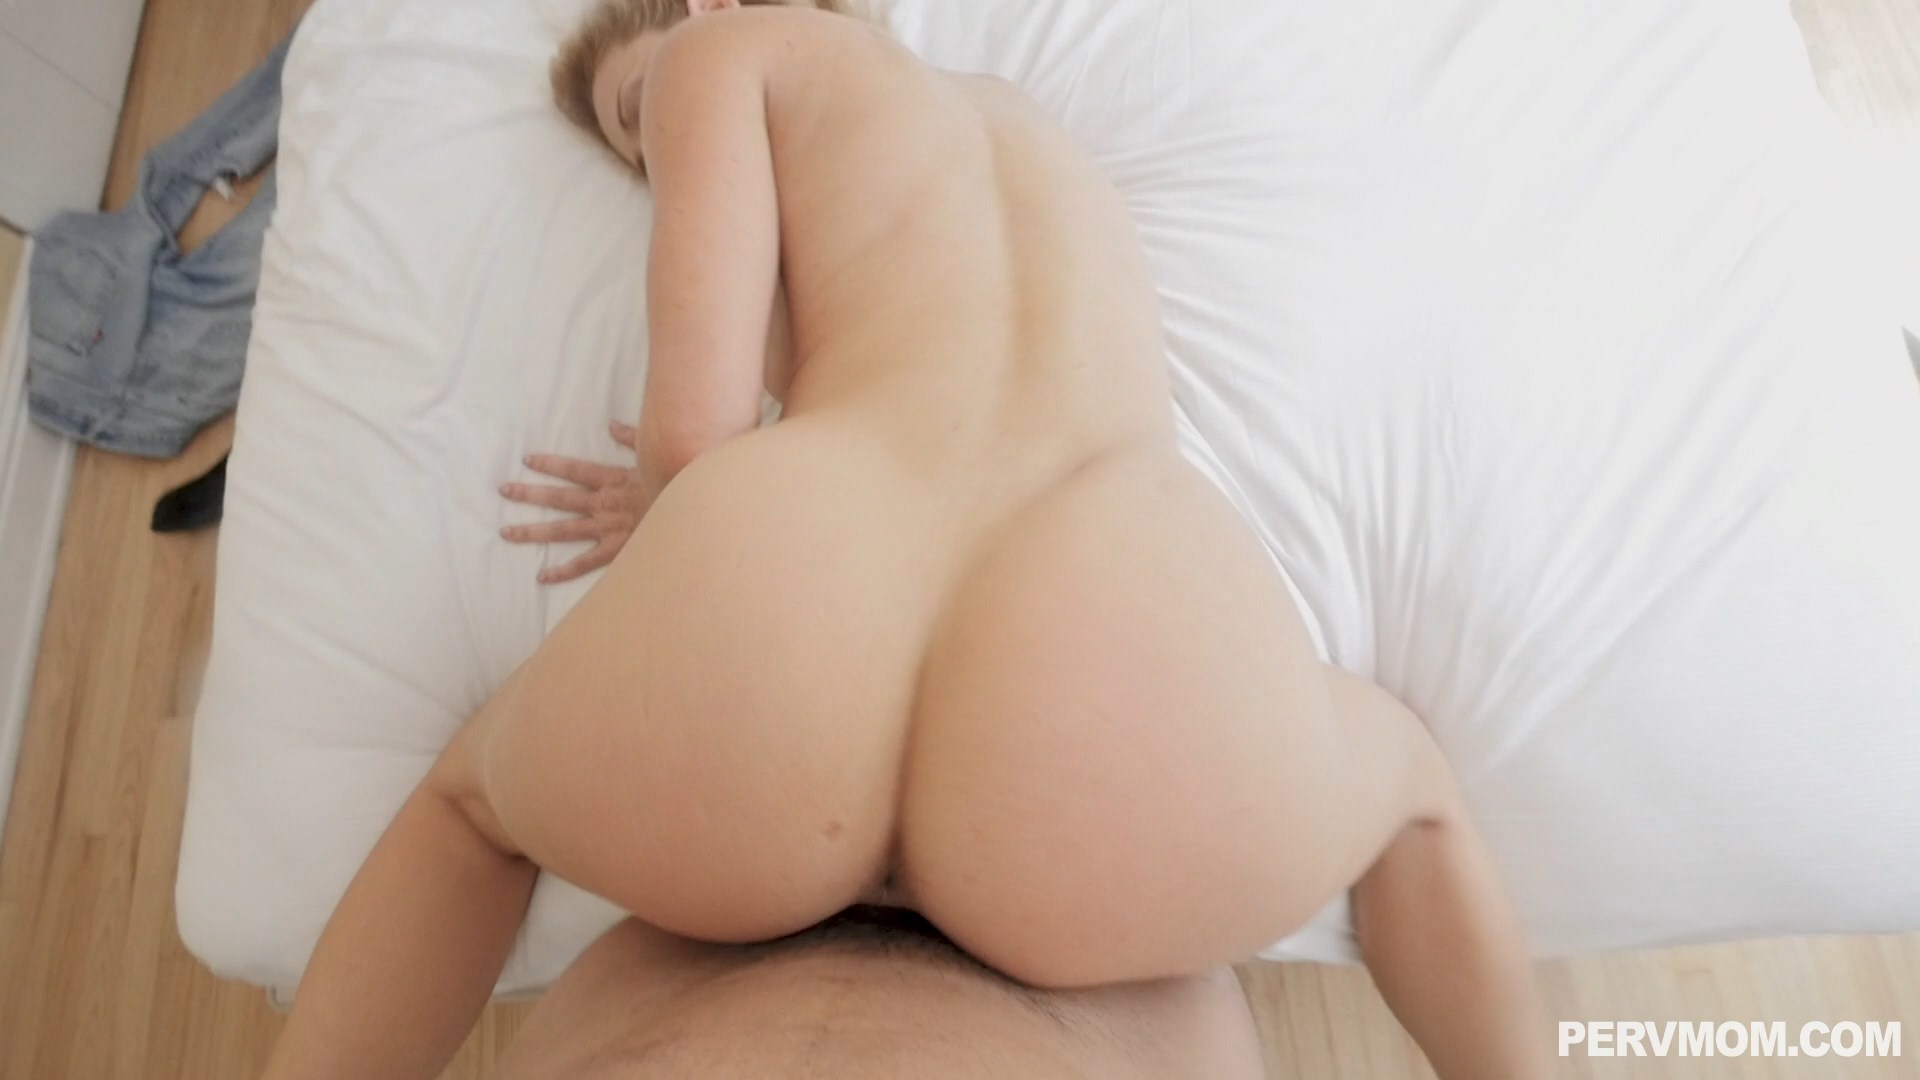 Perv Mom - Stepmoms Sex Drive - Cherie Deville